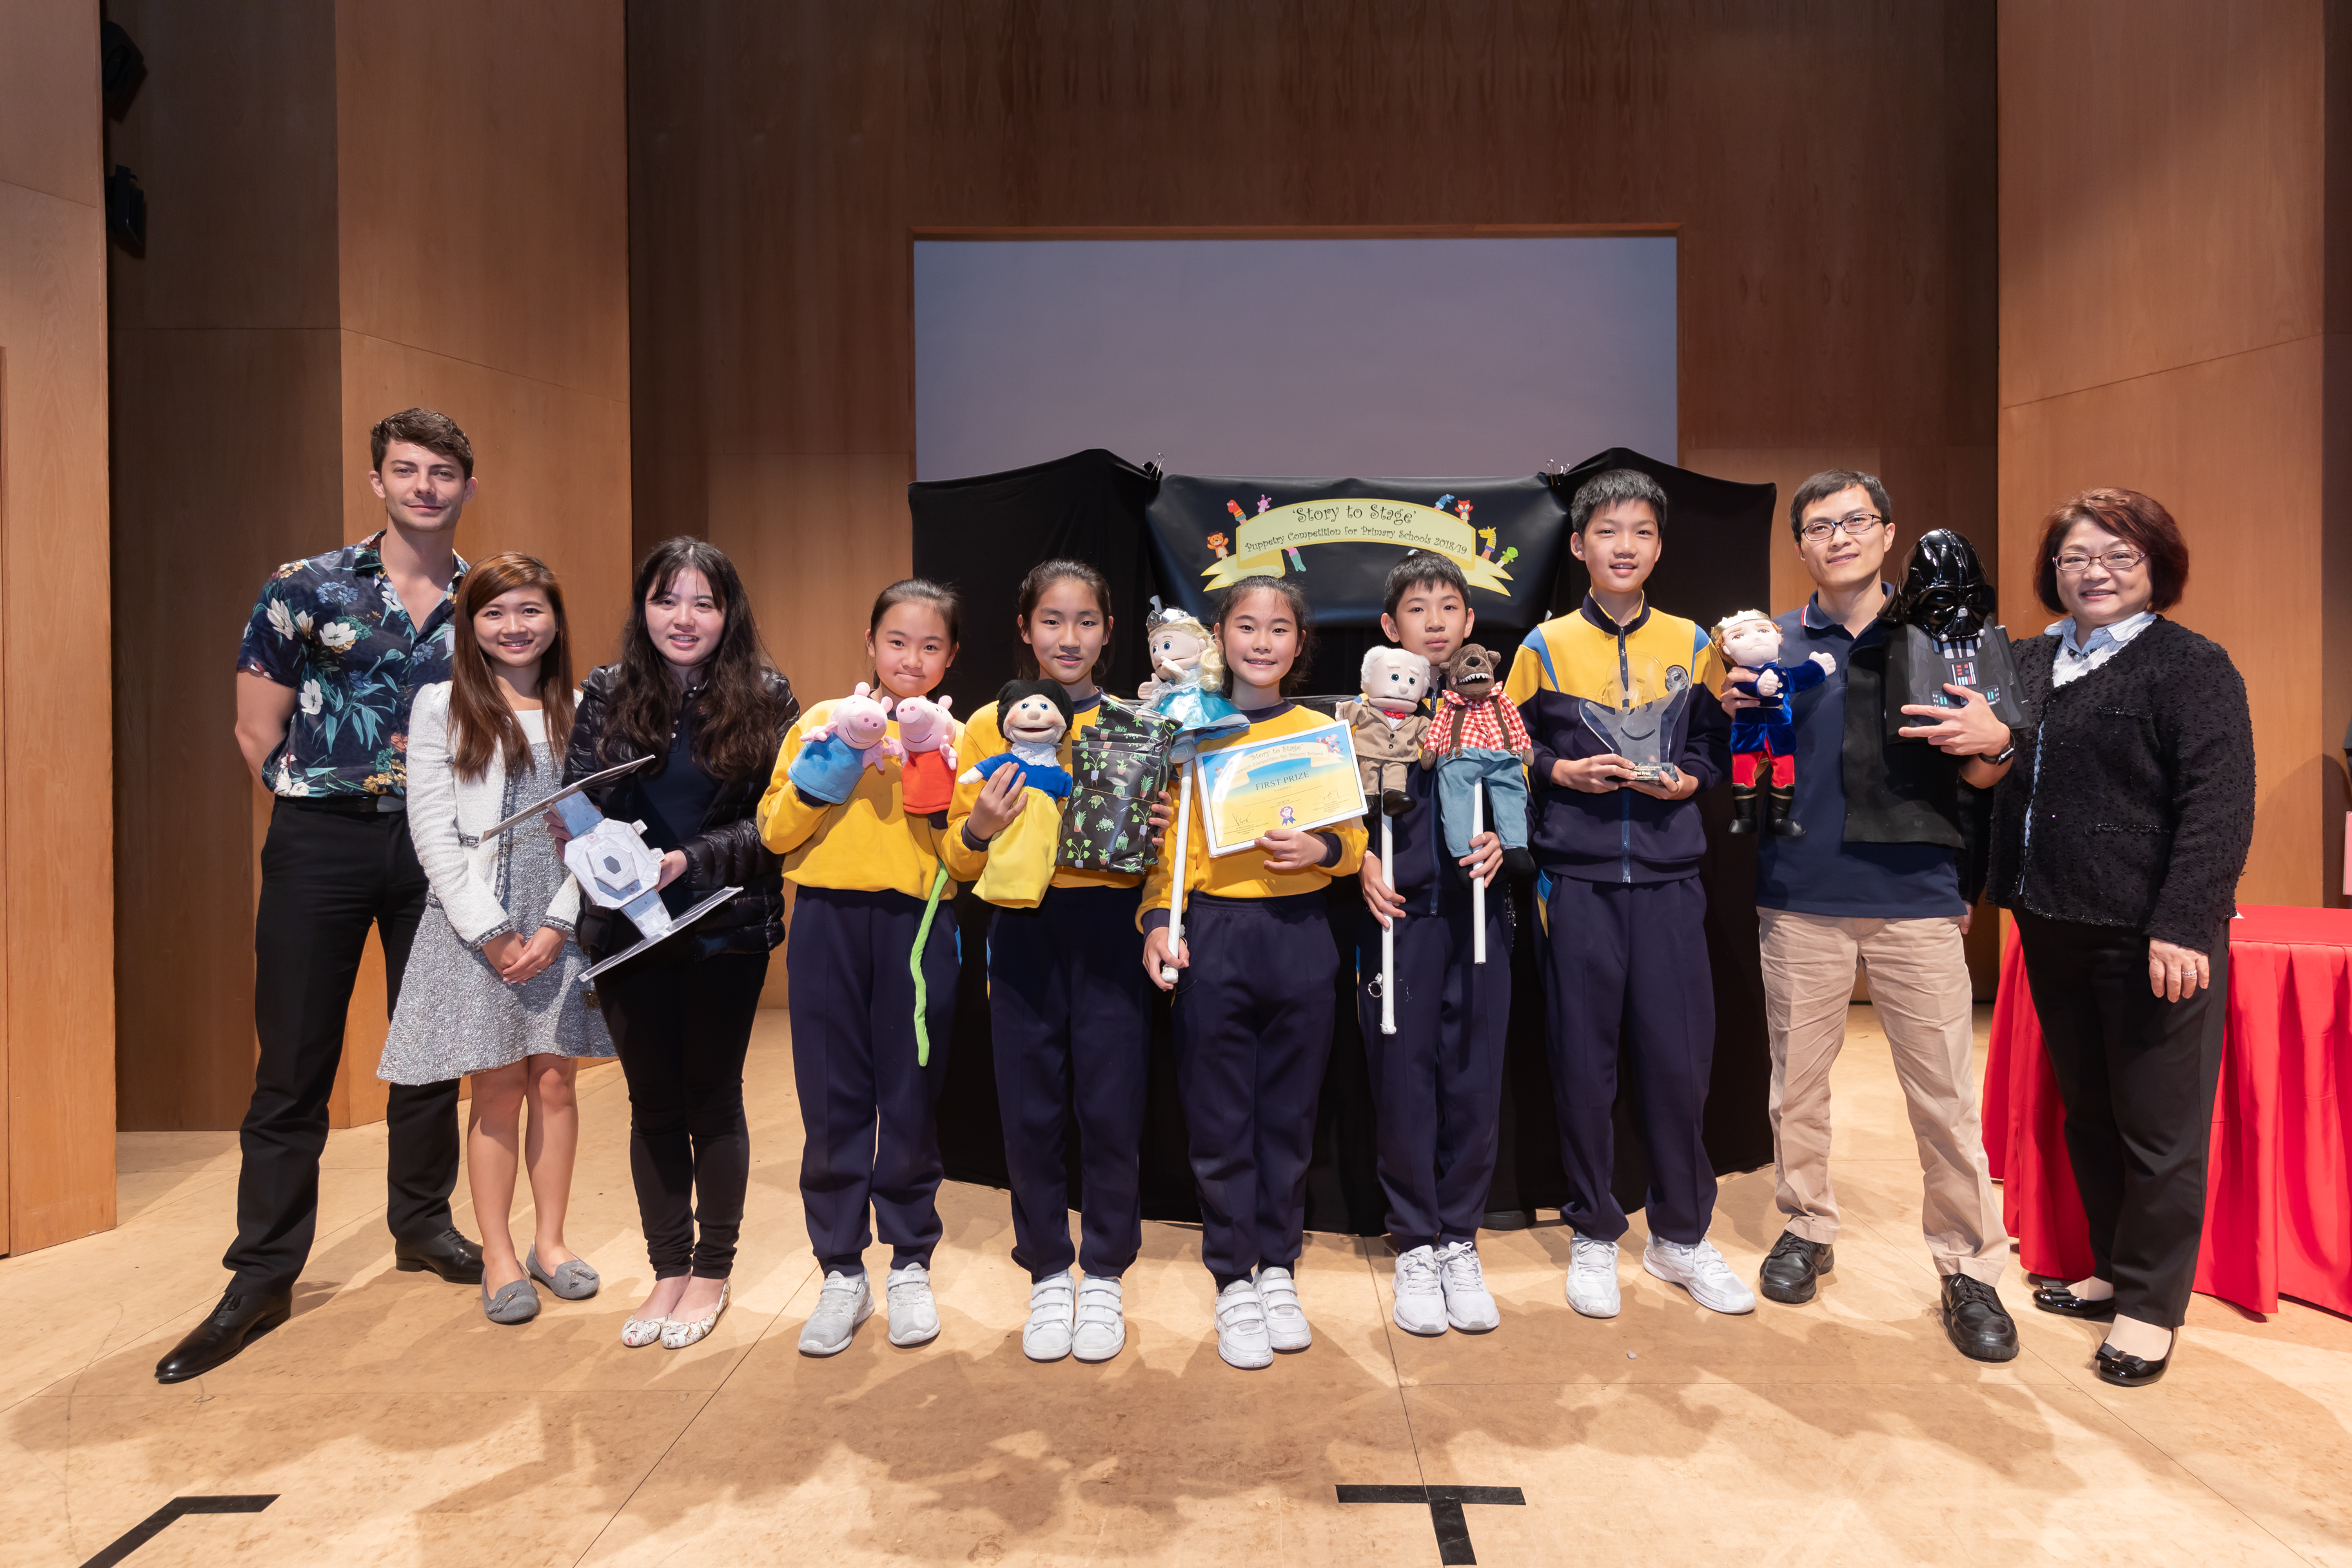 Puppetry Competition 2019 Videos of the 1st Prize Puppery Shows